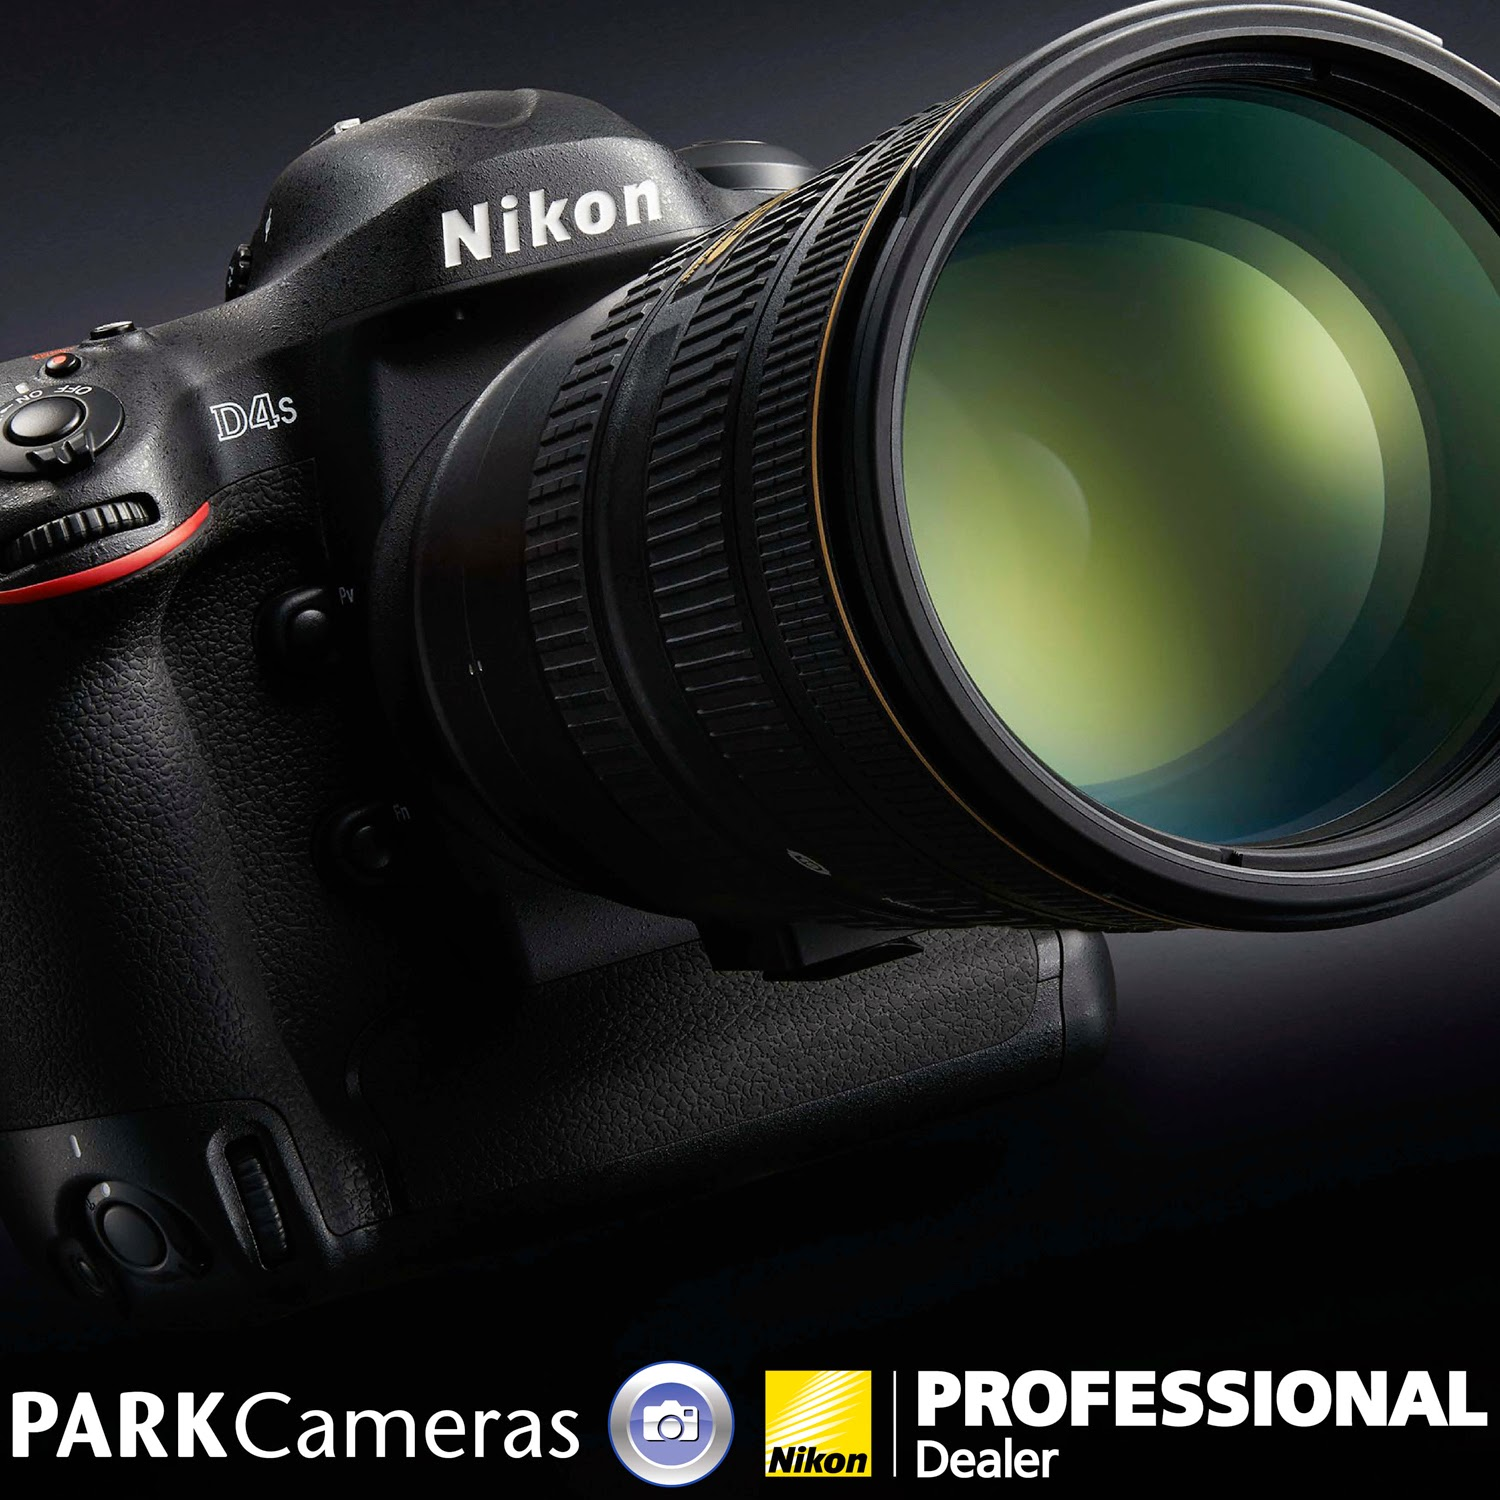 Park Cameras Blog: Nikon developing new firmware update to improve